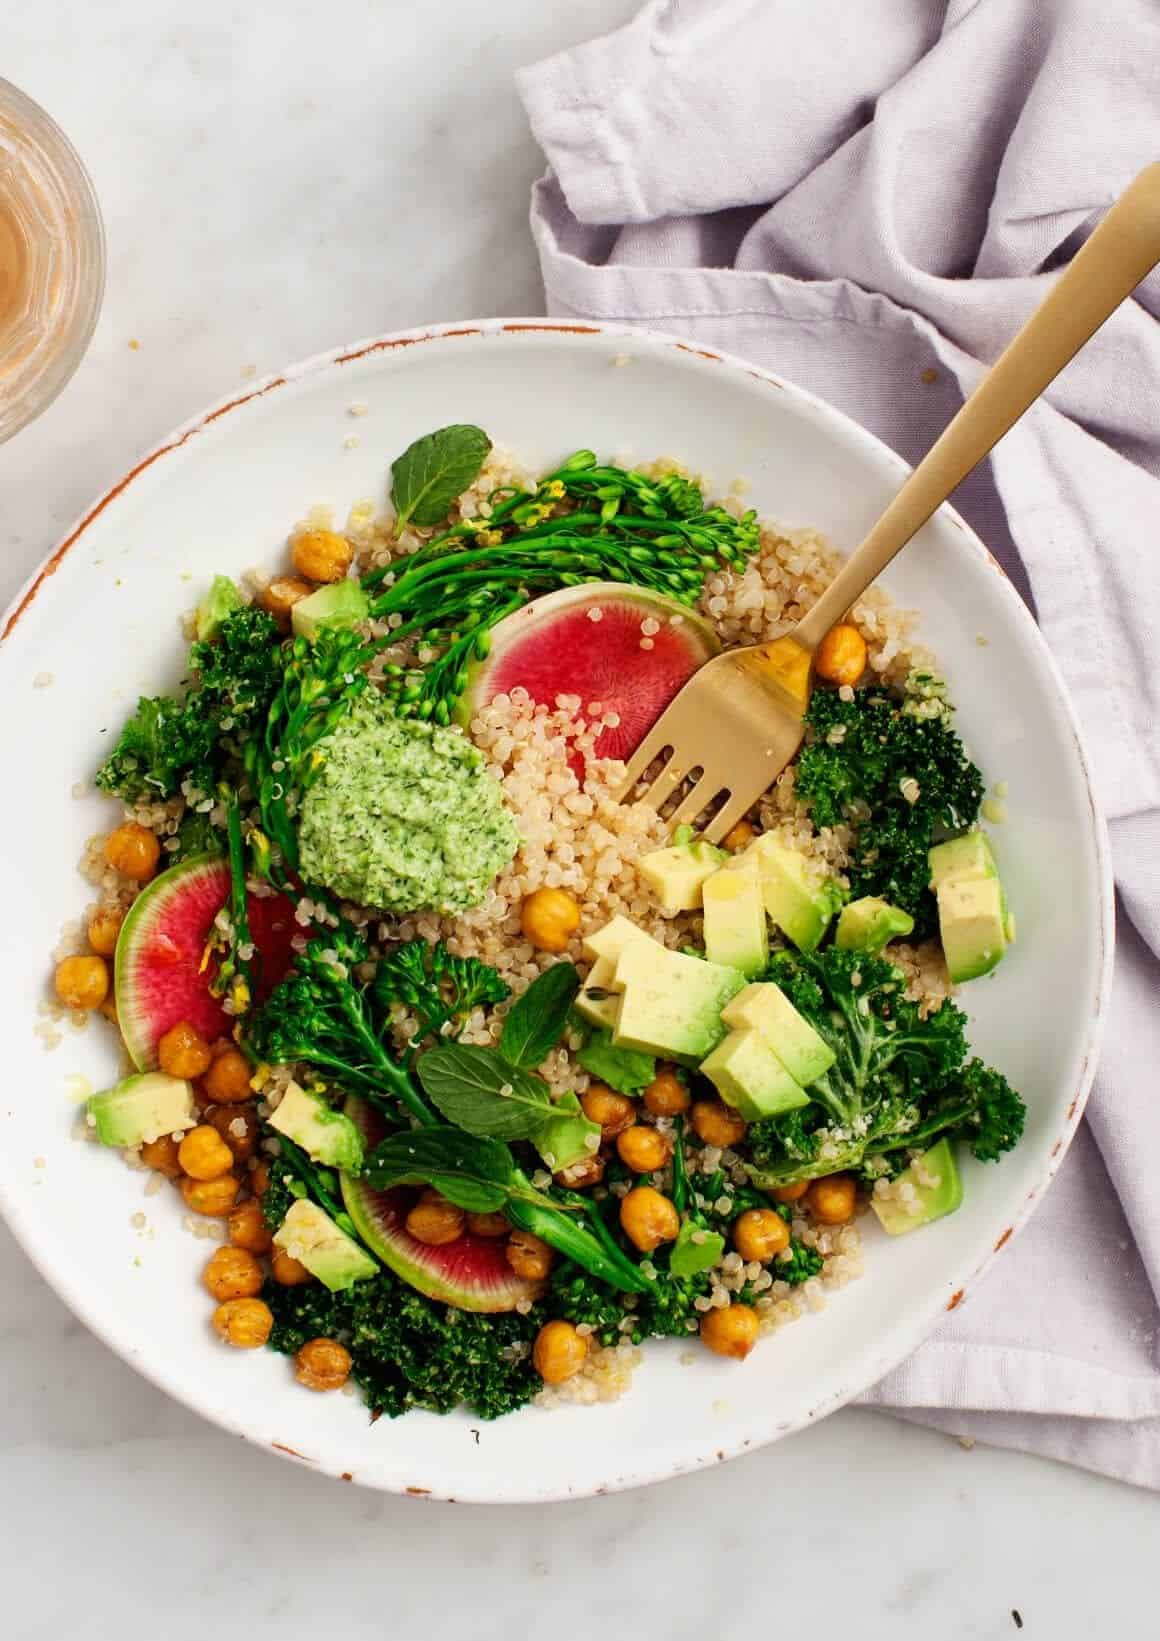 broccoli with pesto quinoa salad in a bowl